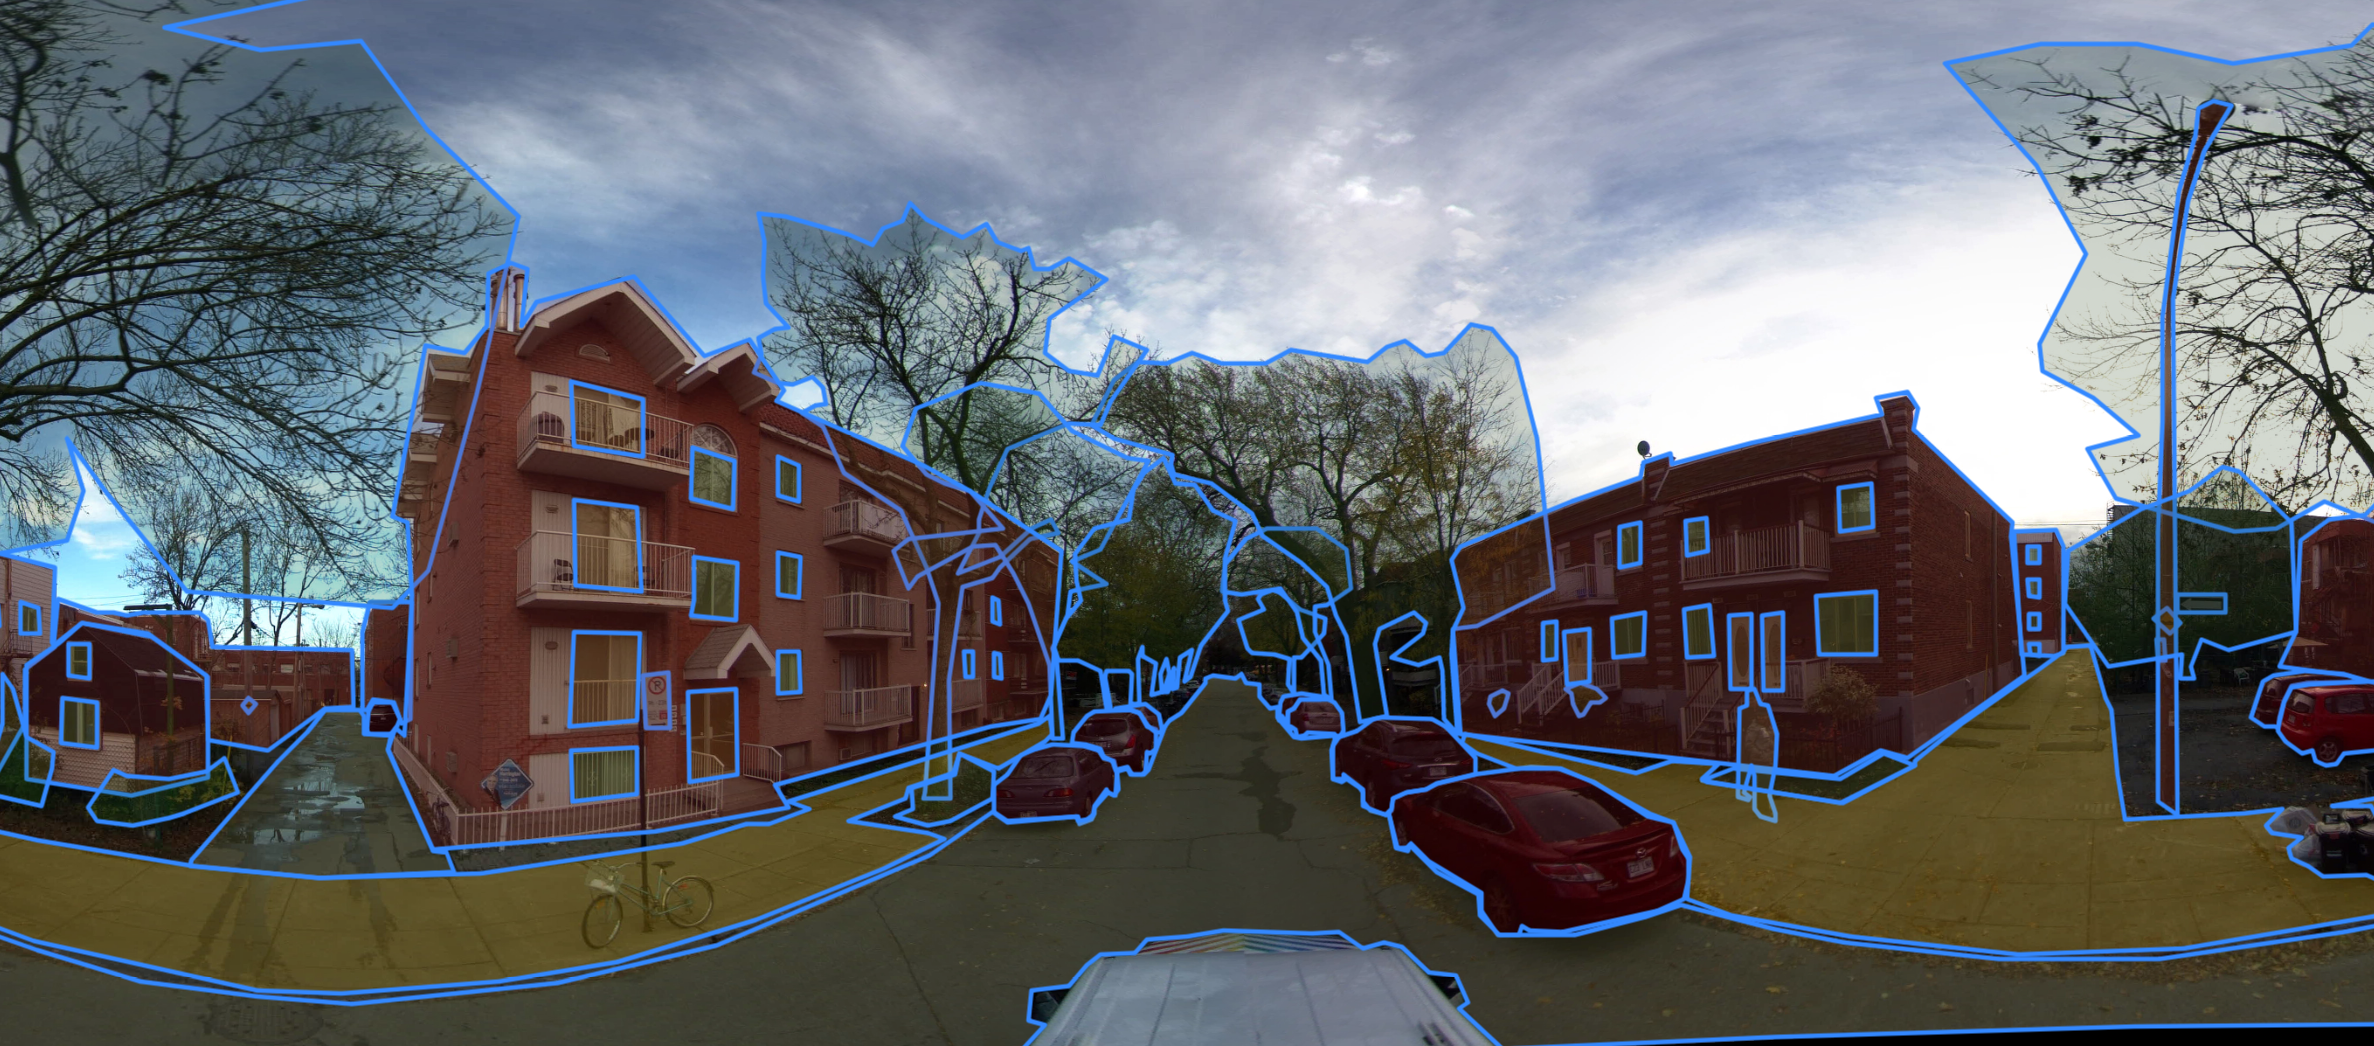 digital-twin-city-object-recognition